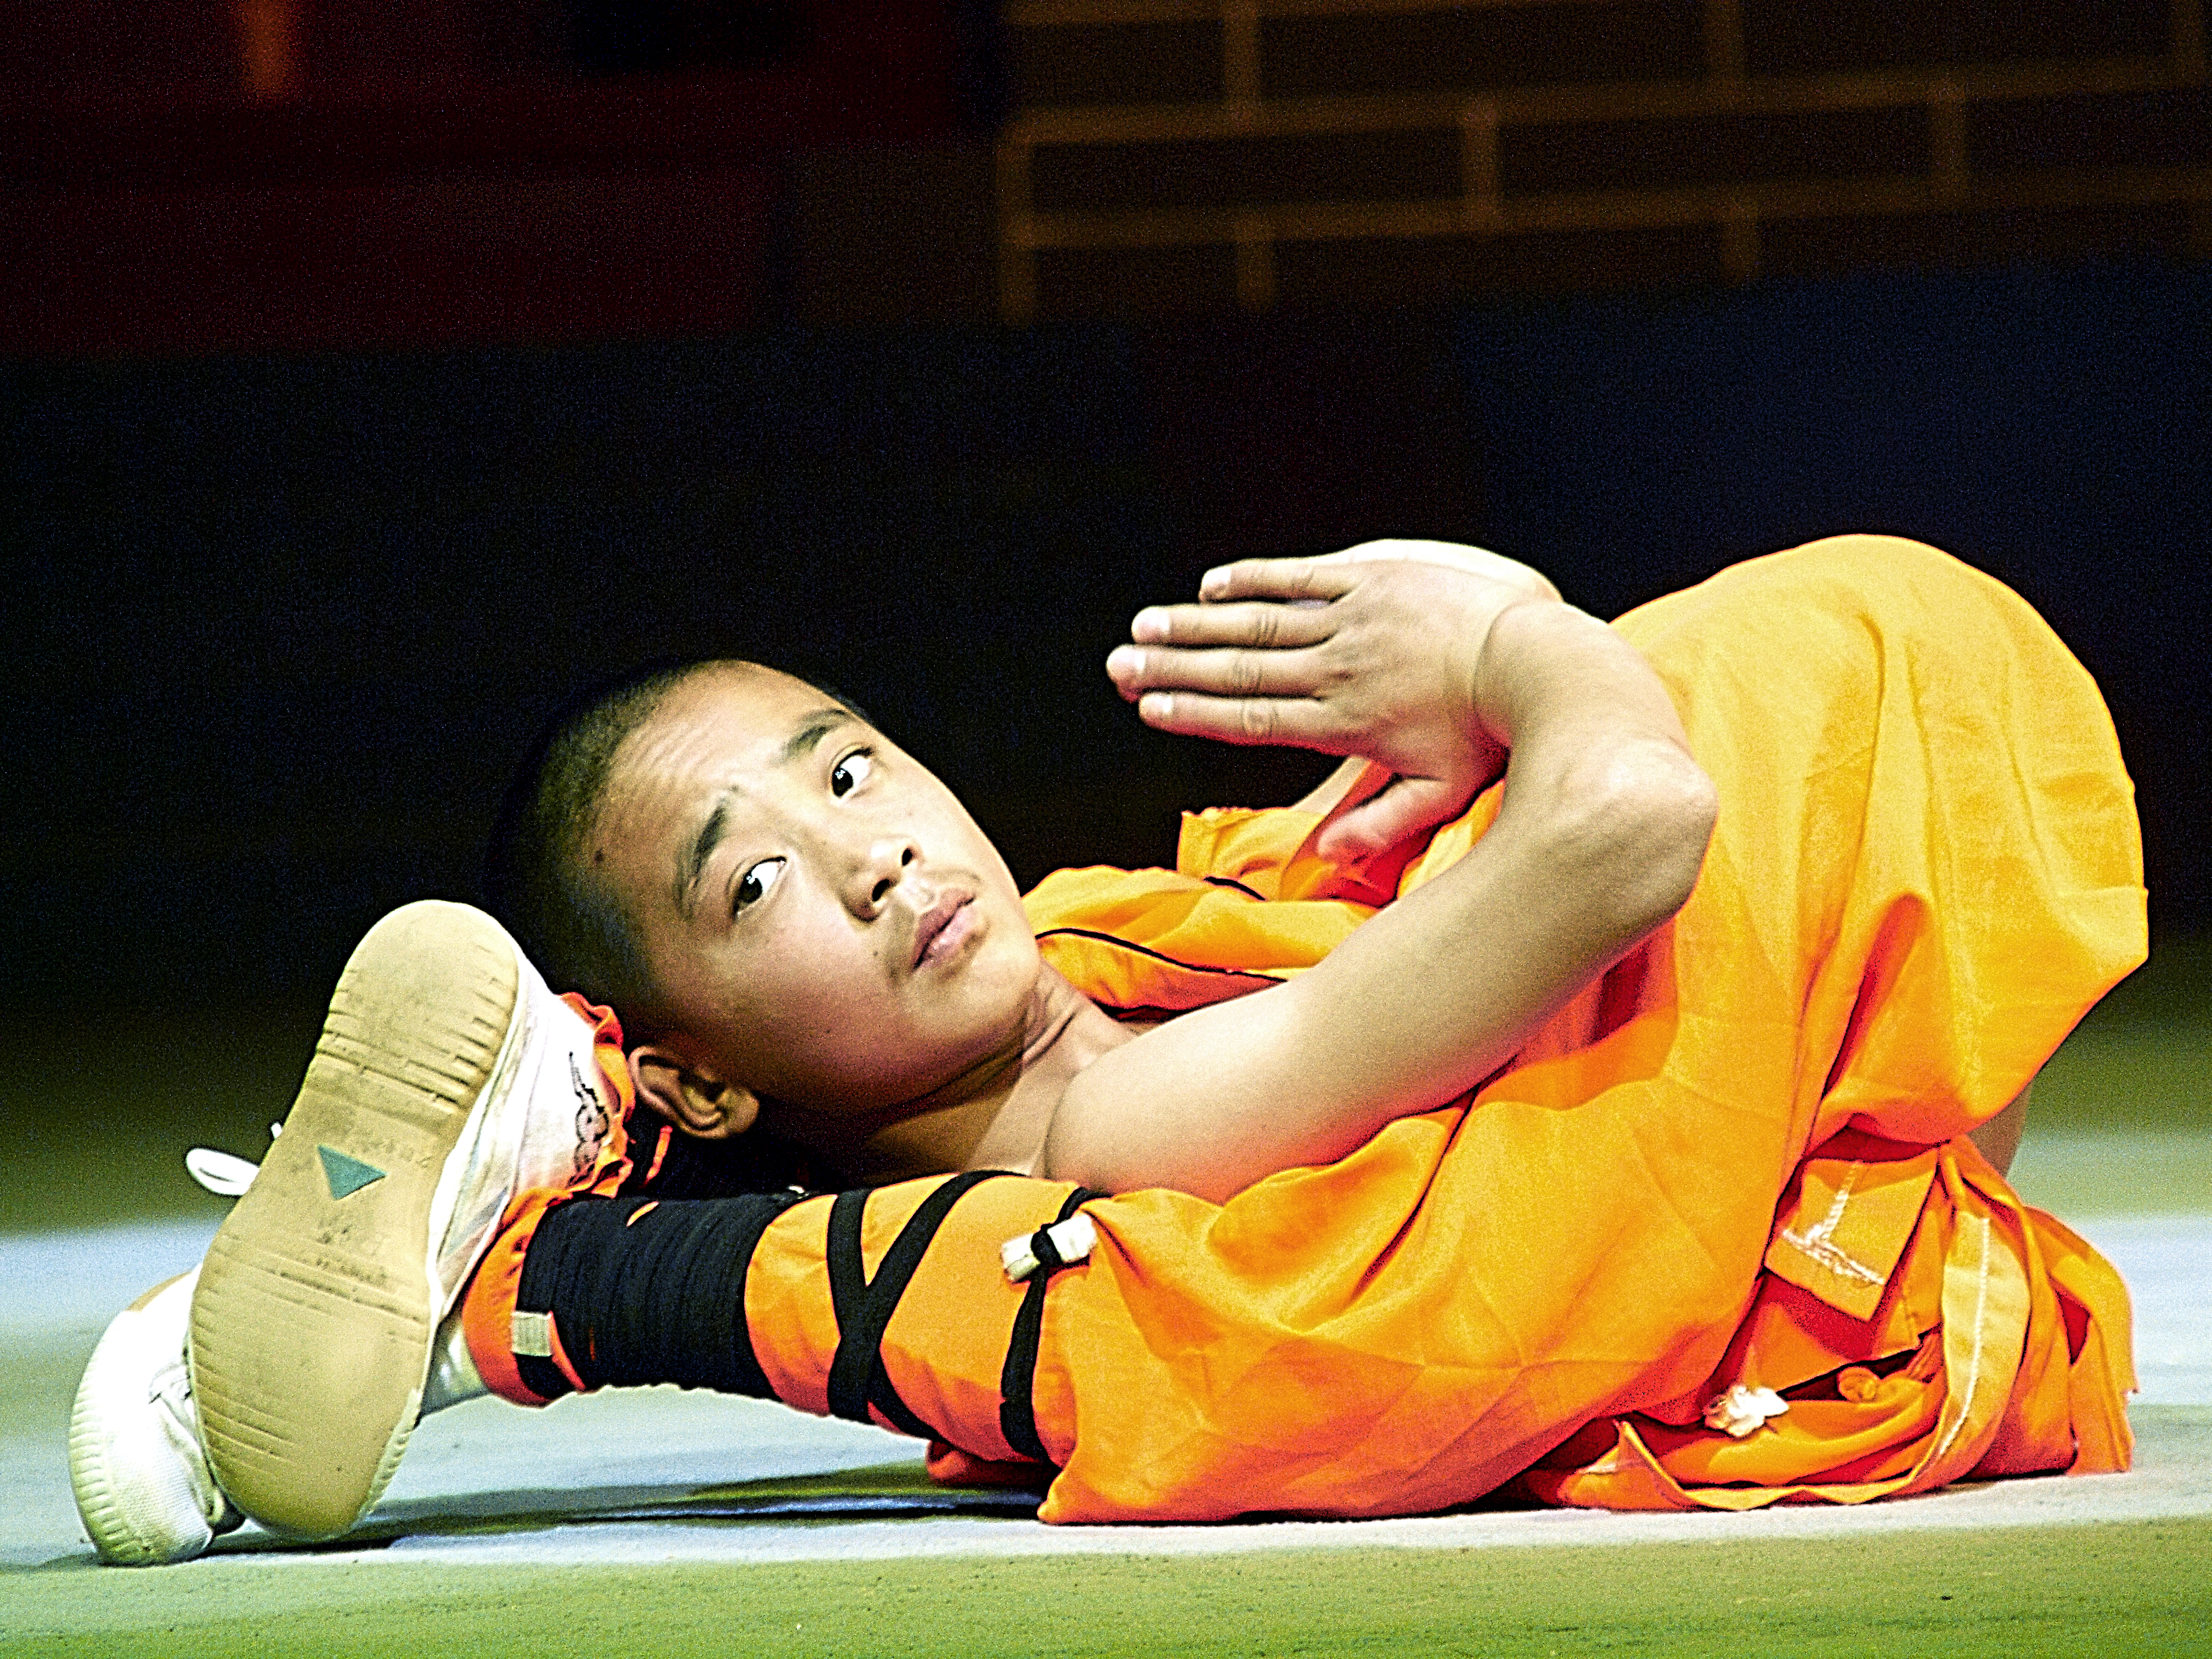 Description Shaolin Kung Fu.jpg